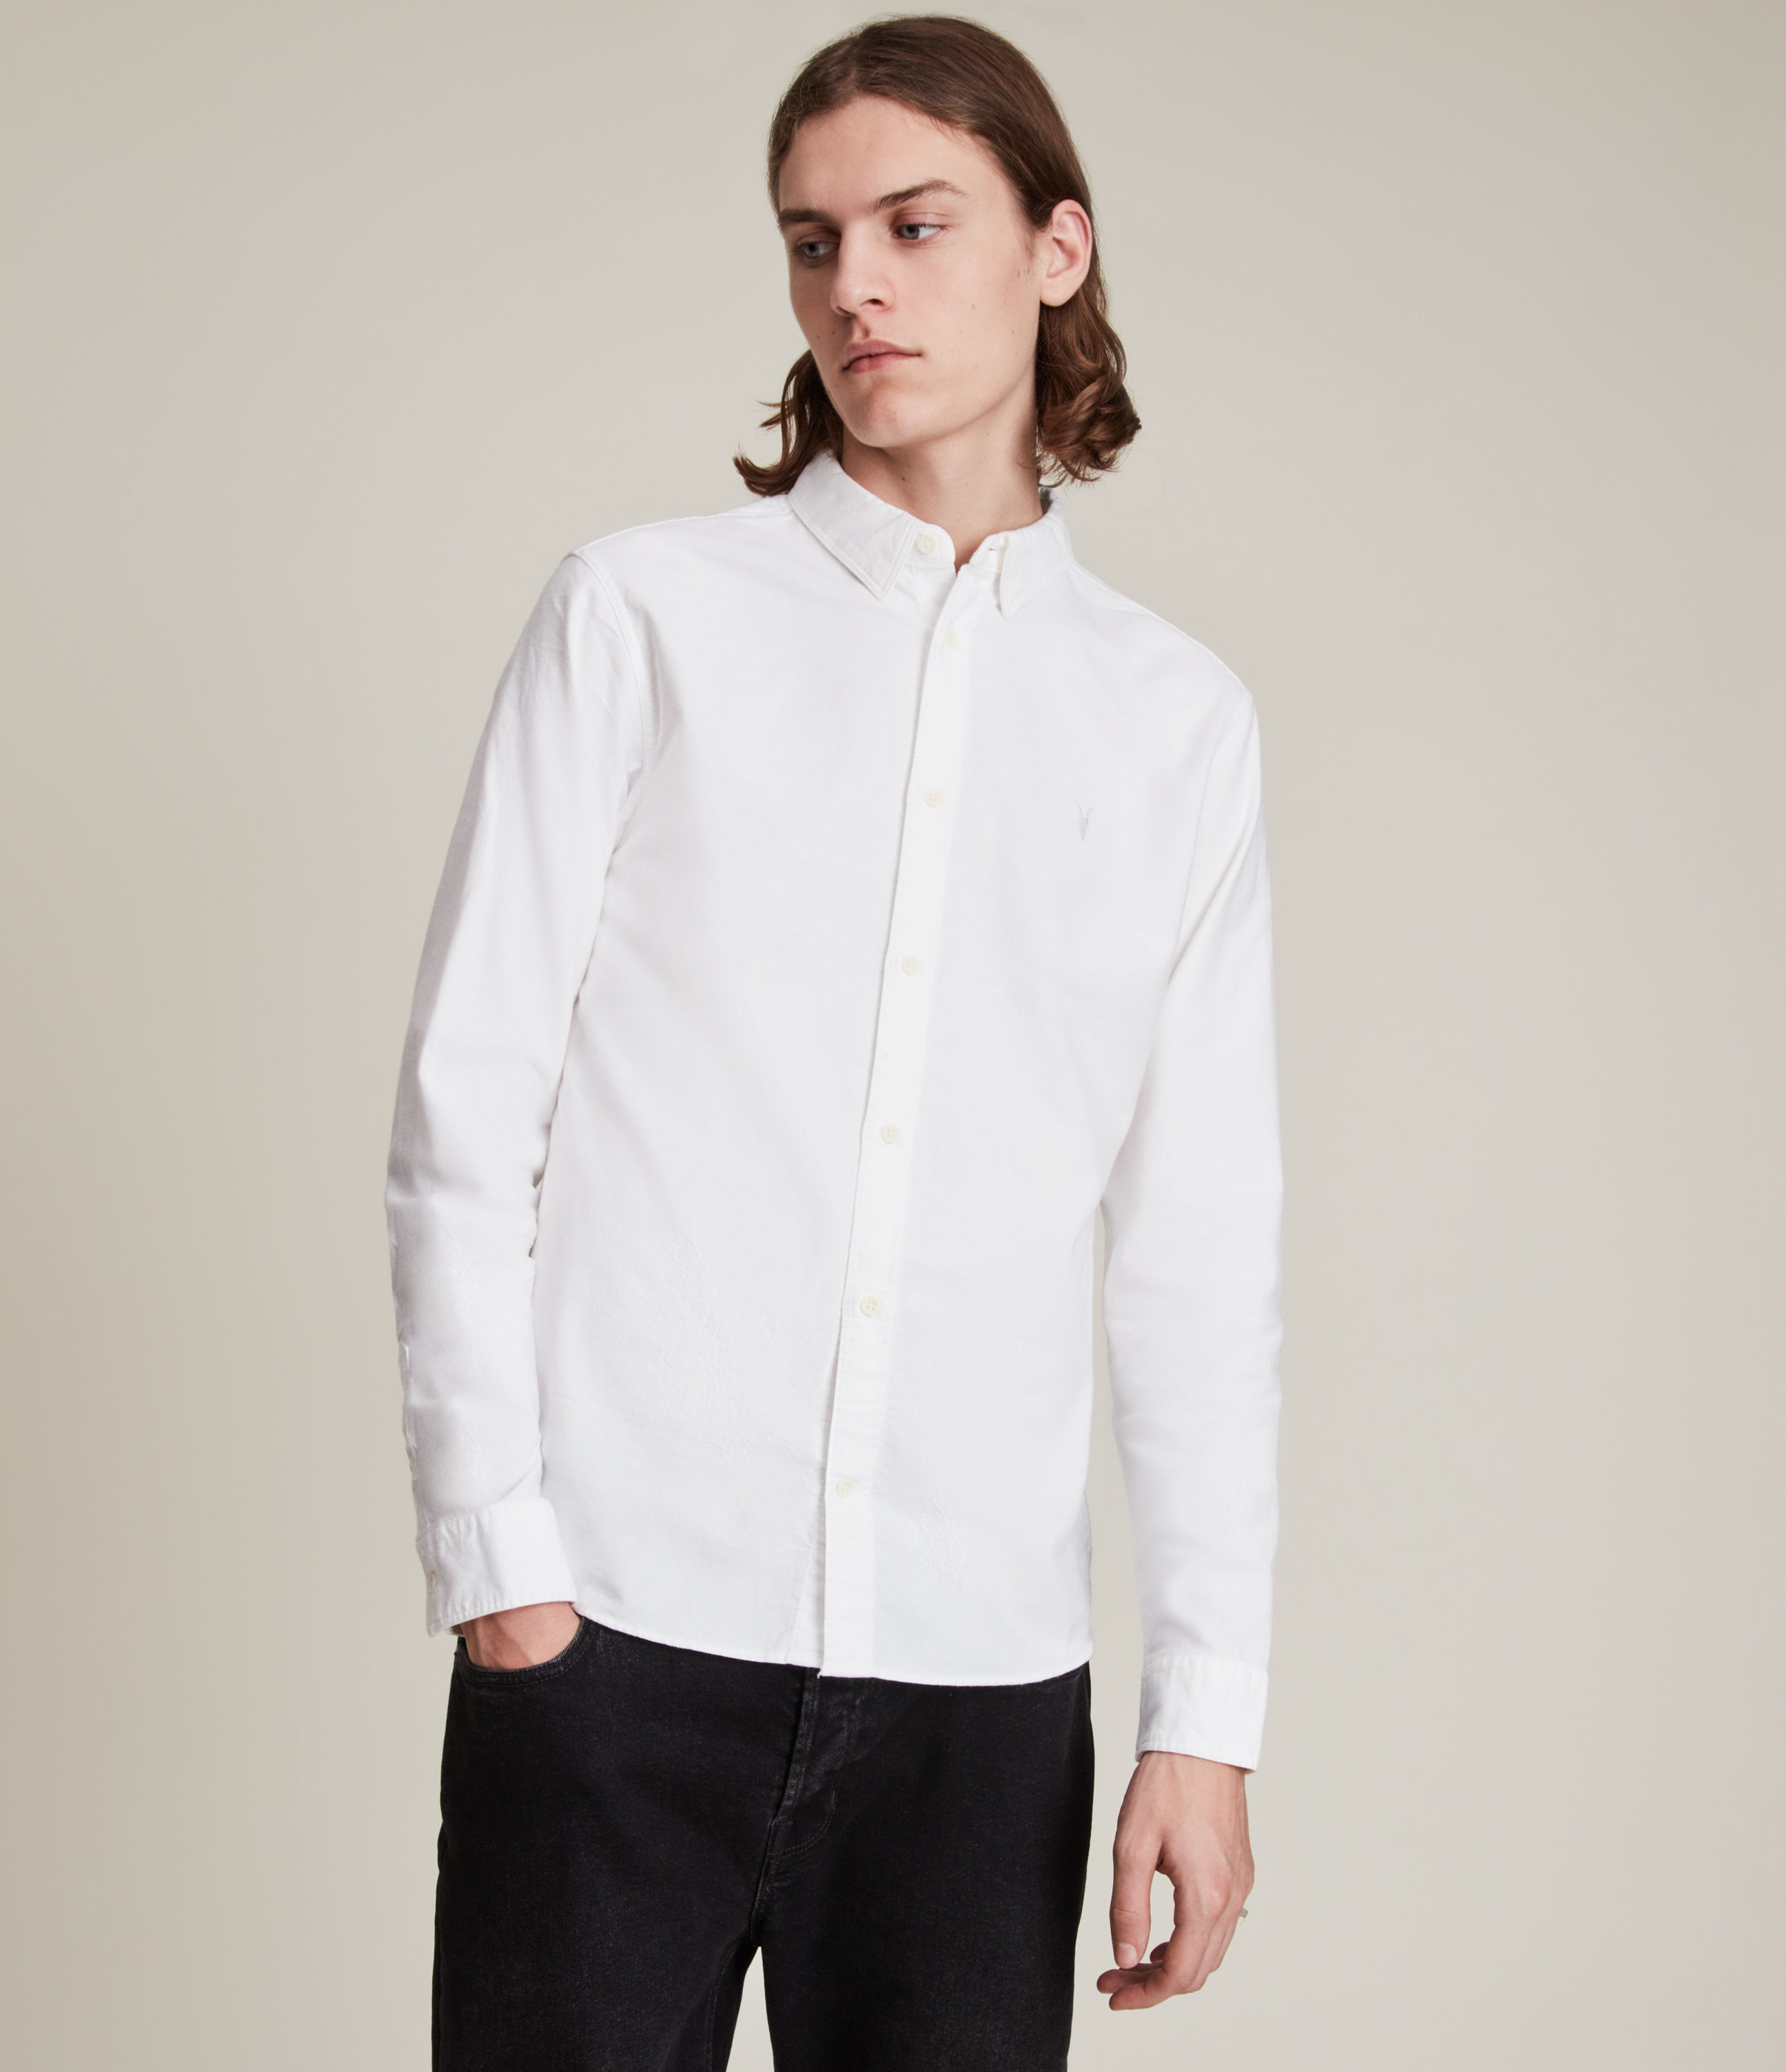 AllSaints Men's Cotton Slim Fit Huntingdon Long Sleeve Shirt, White, Size: L